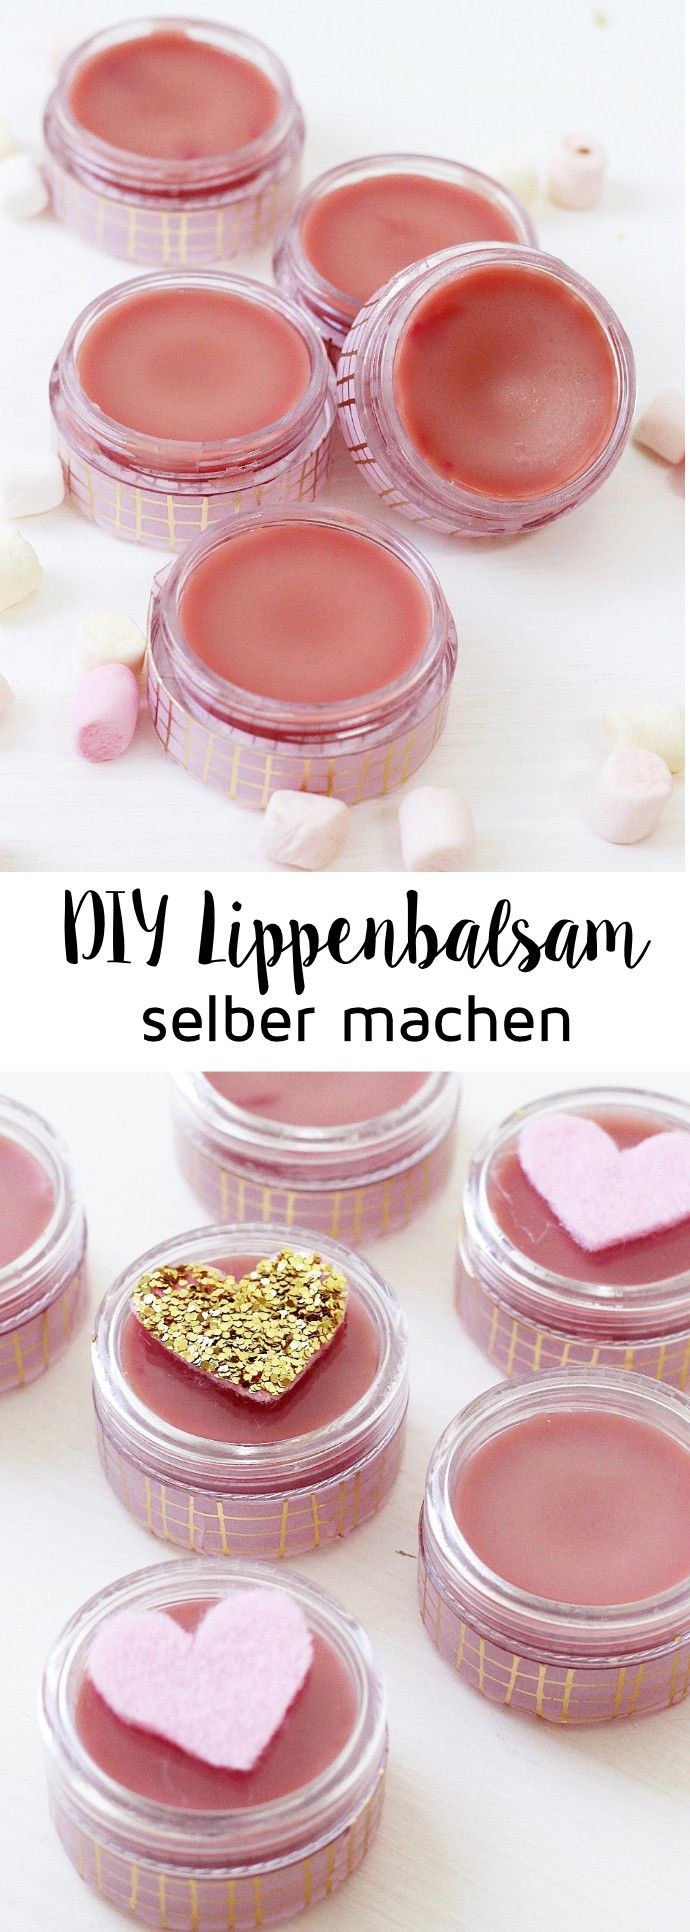 Make DIY lip balm from shea butter yourself: Great gift idea!